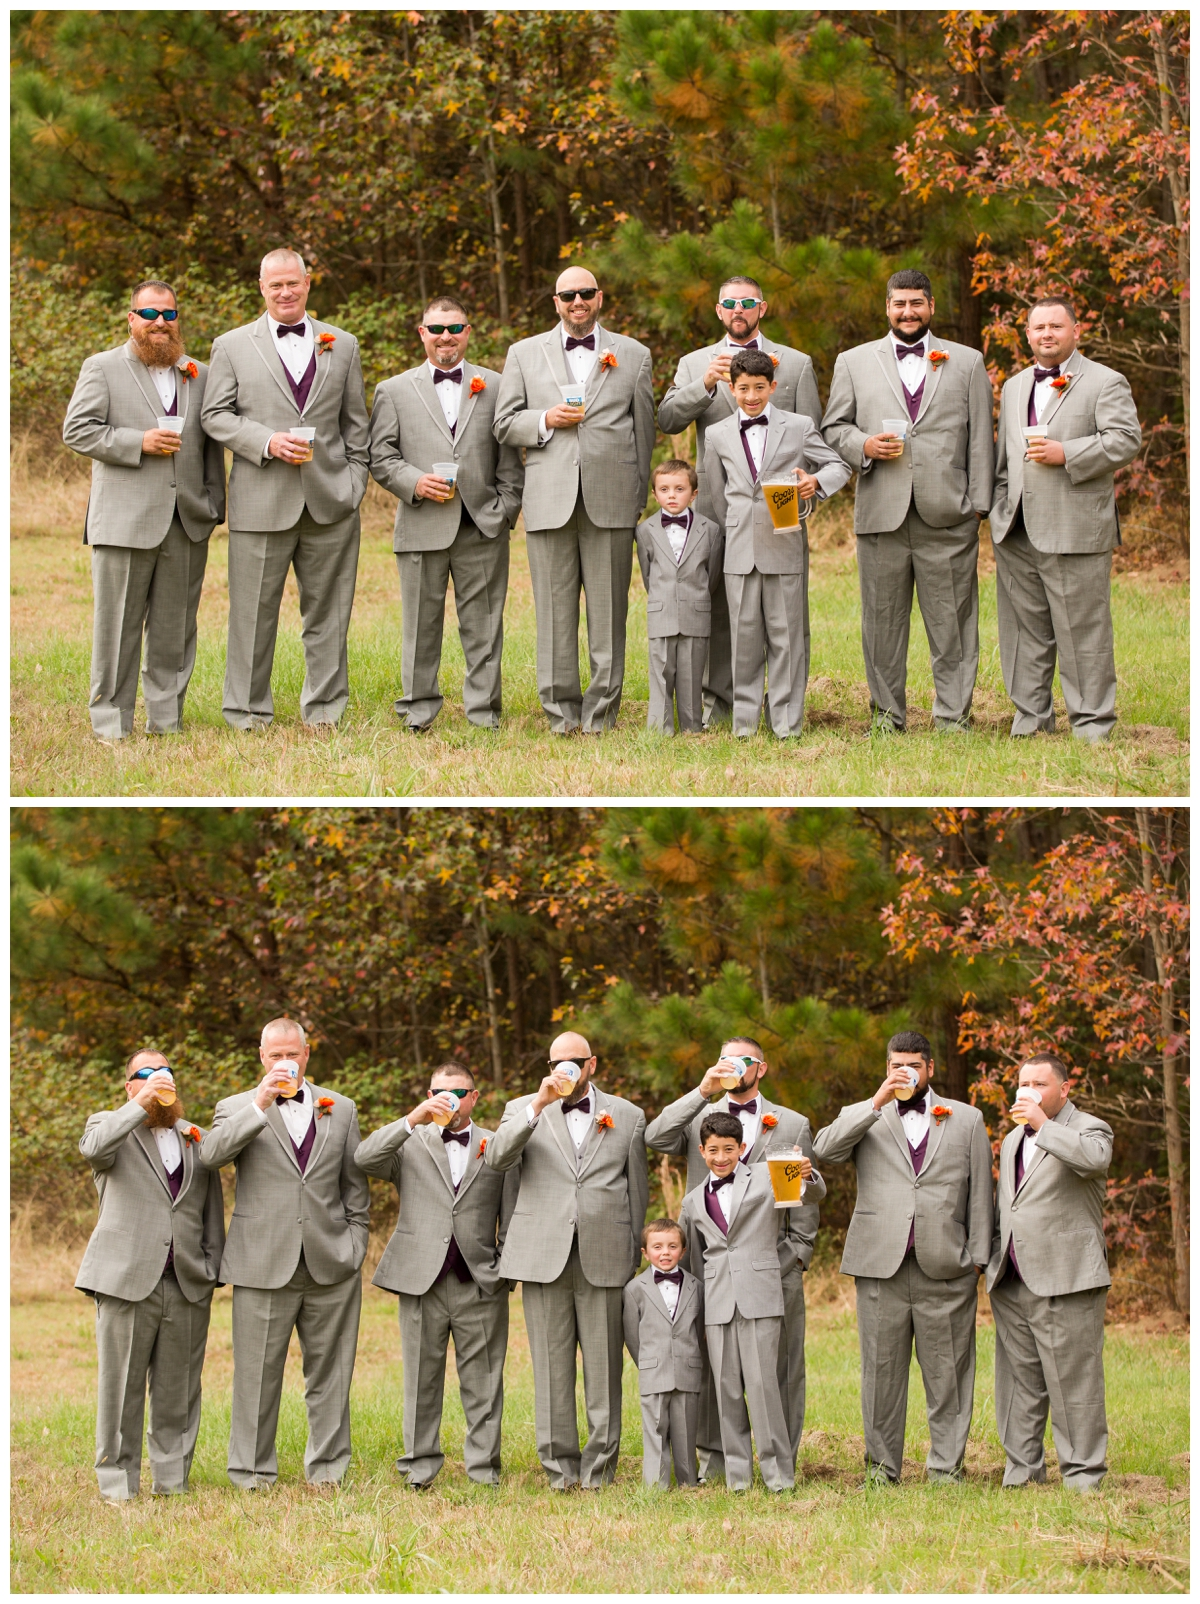 Groomsmen drinking beer while junior groomsmen holds the pitcher